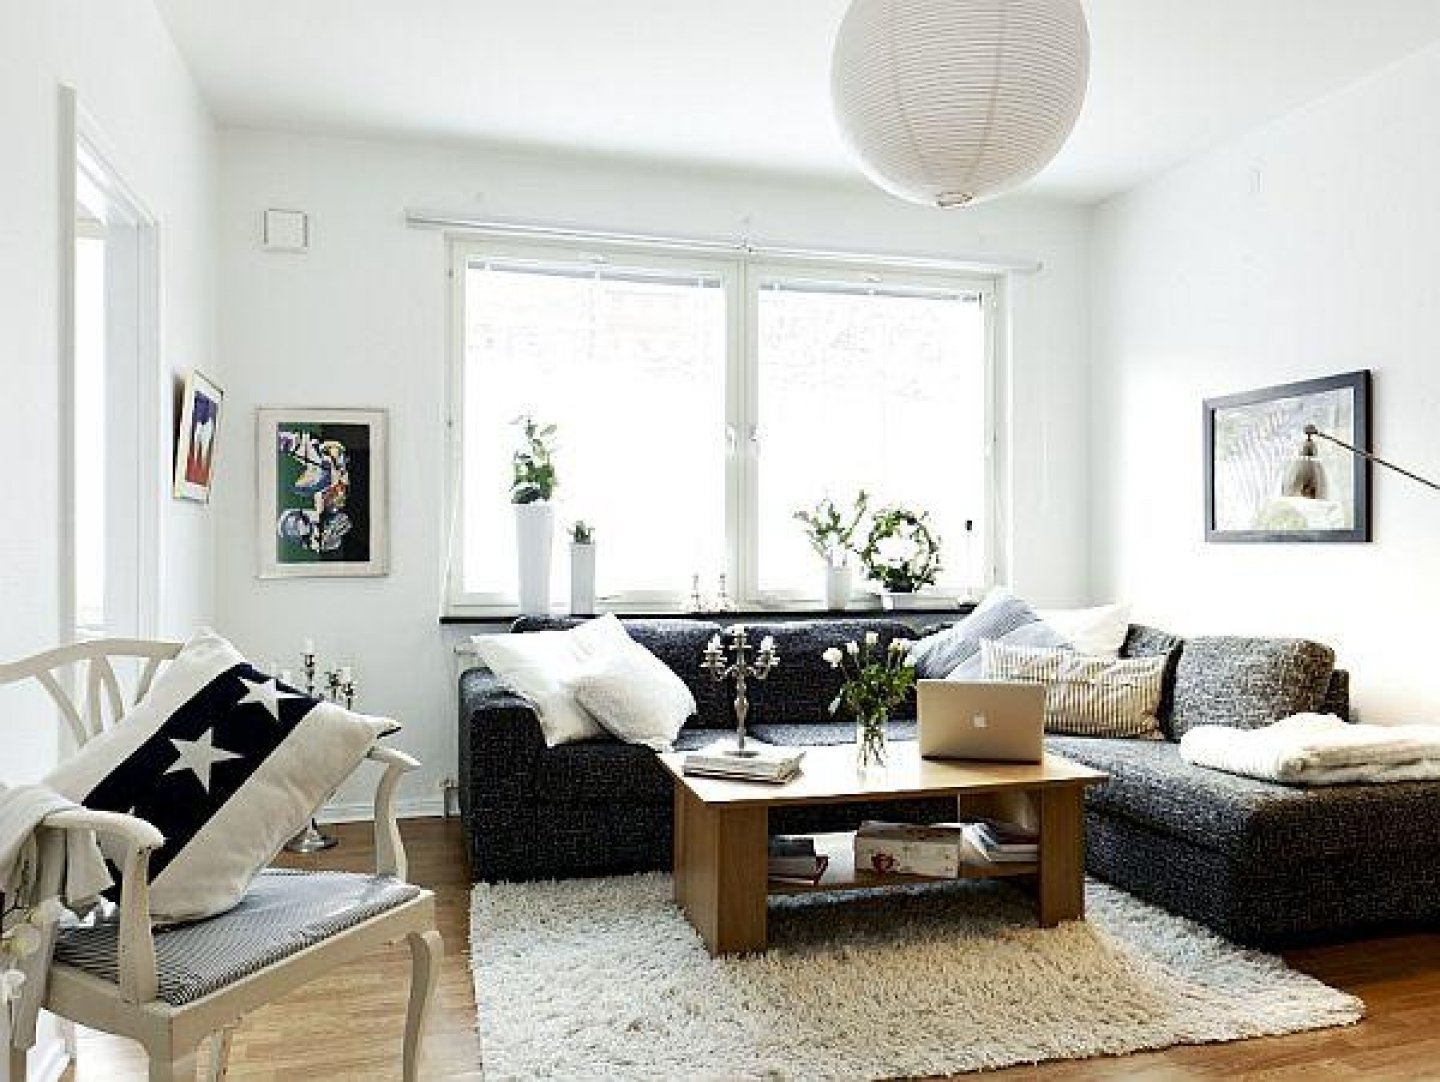 10 Best Living Room Ideas For Small Apartment design for small studio apartment small space living apartment home 2020